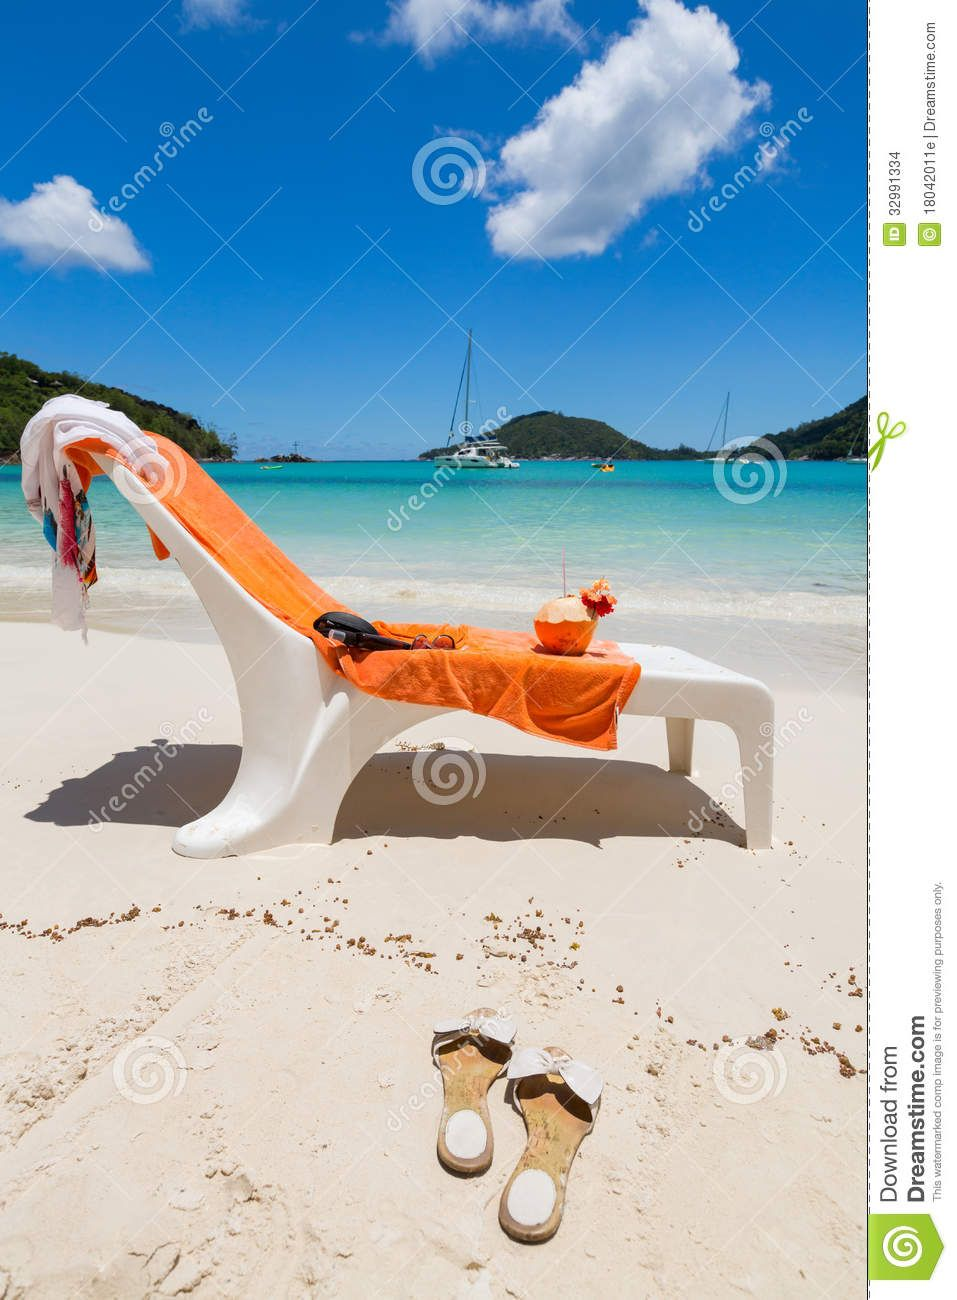 Beach Chair With Orange Towel And Coconut Drink Orange Towels Coconut Drinks Beach Chairs